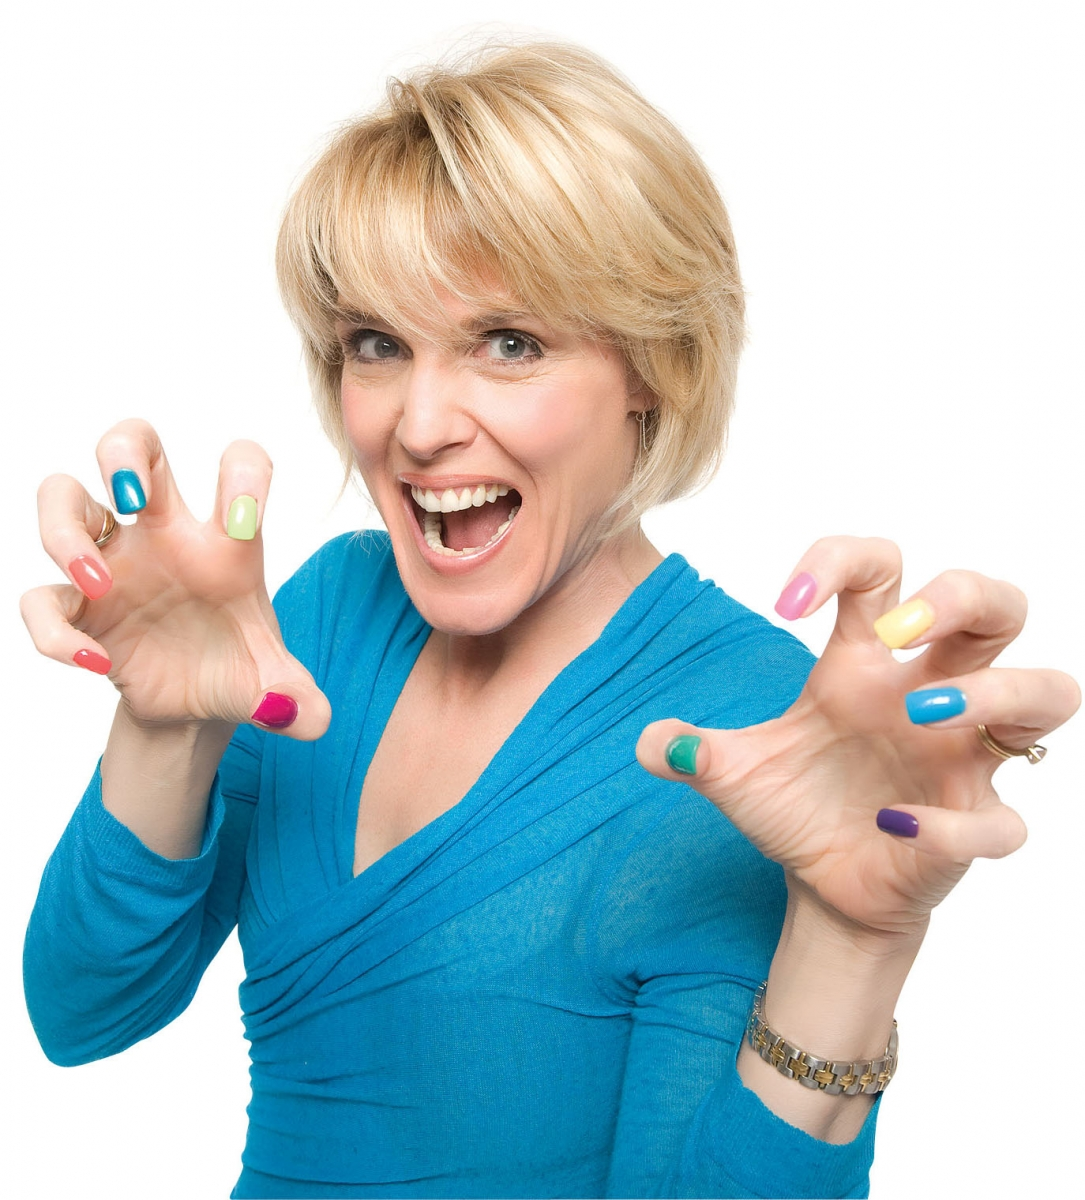 Caroline Miller, a local life coach and author, is a long-time customer of Acqua Nails. Photo credit: Erick Gibson